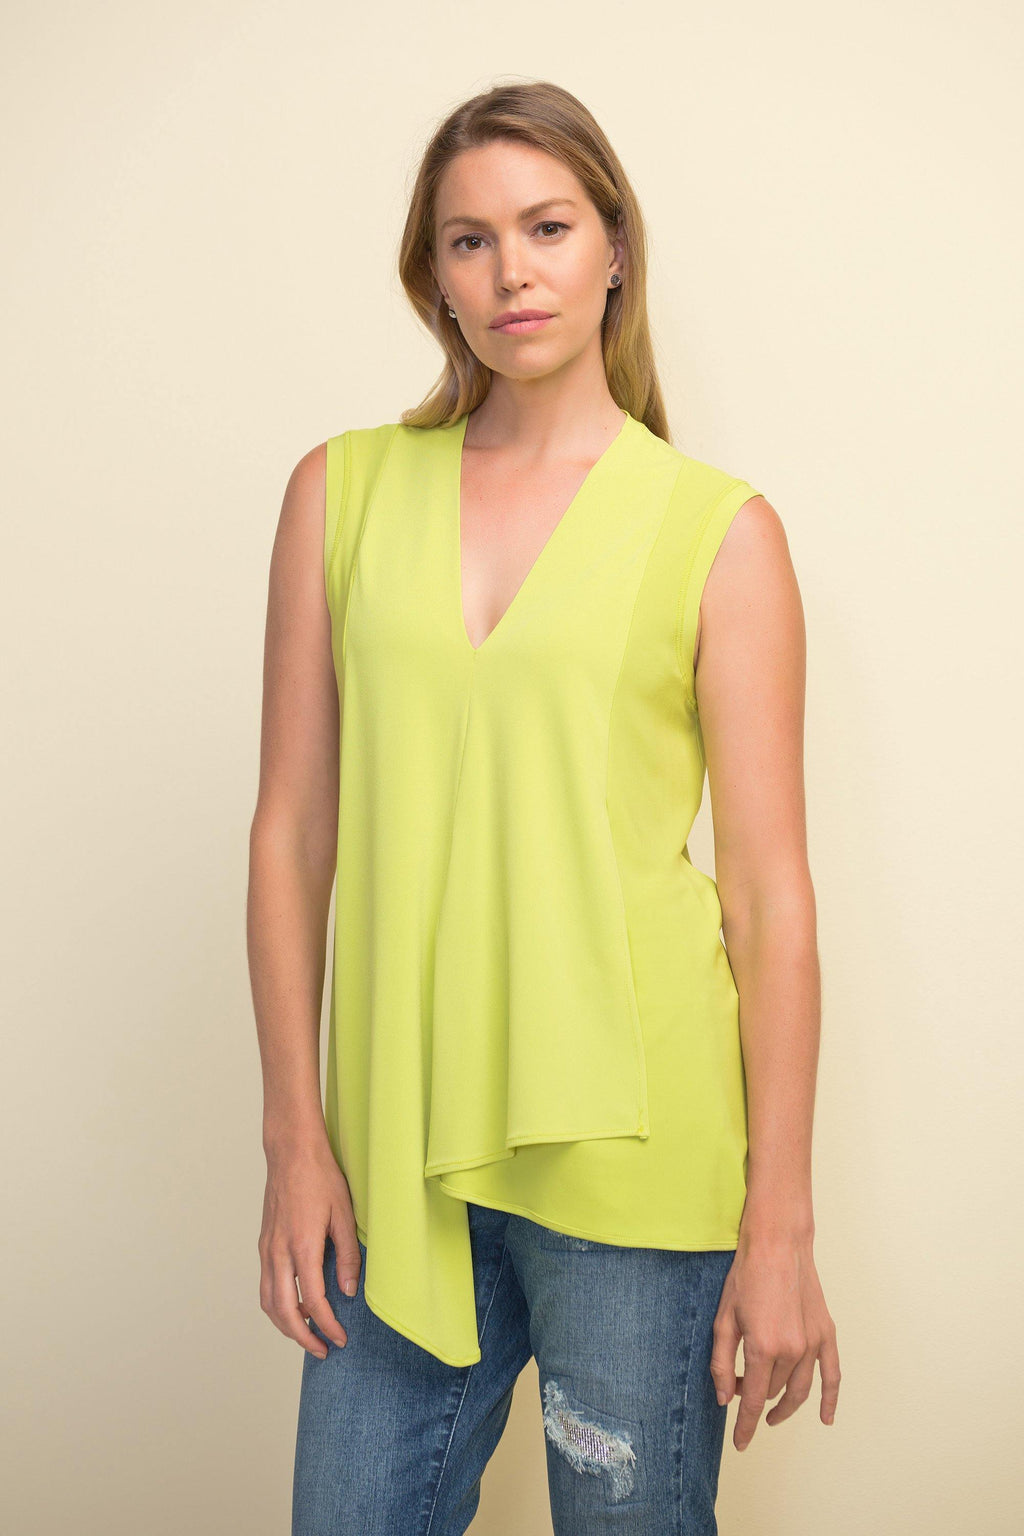 Joseph Ribkoff V-Neck Sleeveless Style 161060